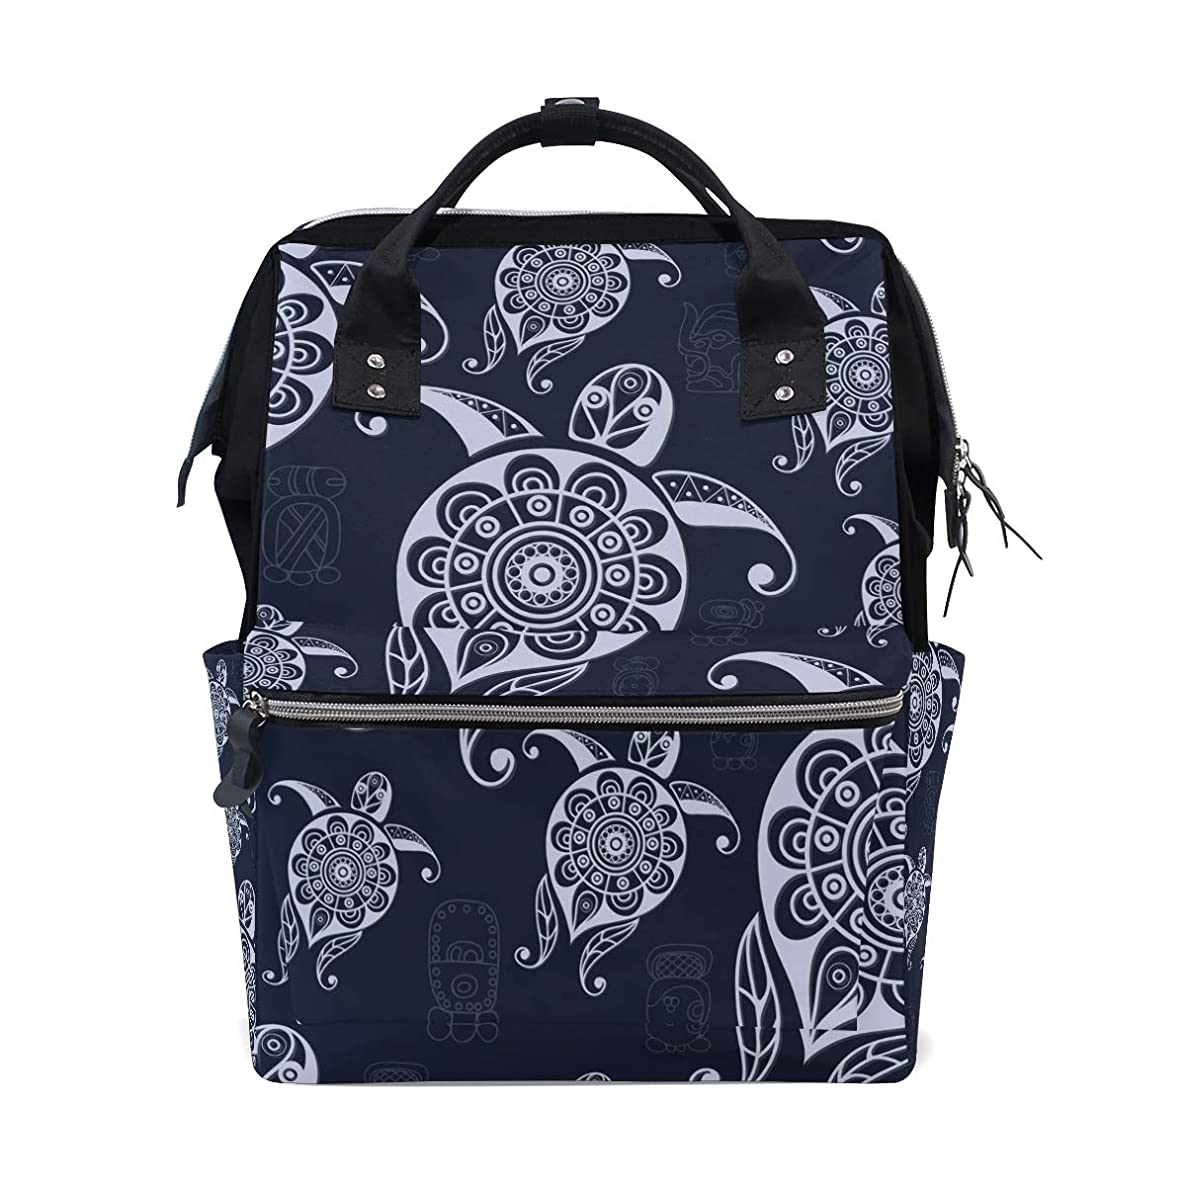 Boho Sea Turtle Tortoise School Backpack Large Capacity Mummy Bags Laptop Handbag Casual Travel Rucksack Satchel For Women Men Adult Teen Children